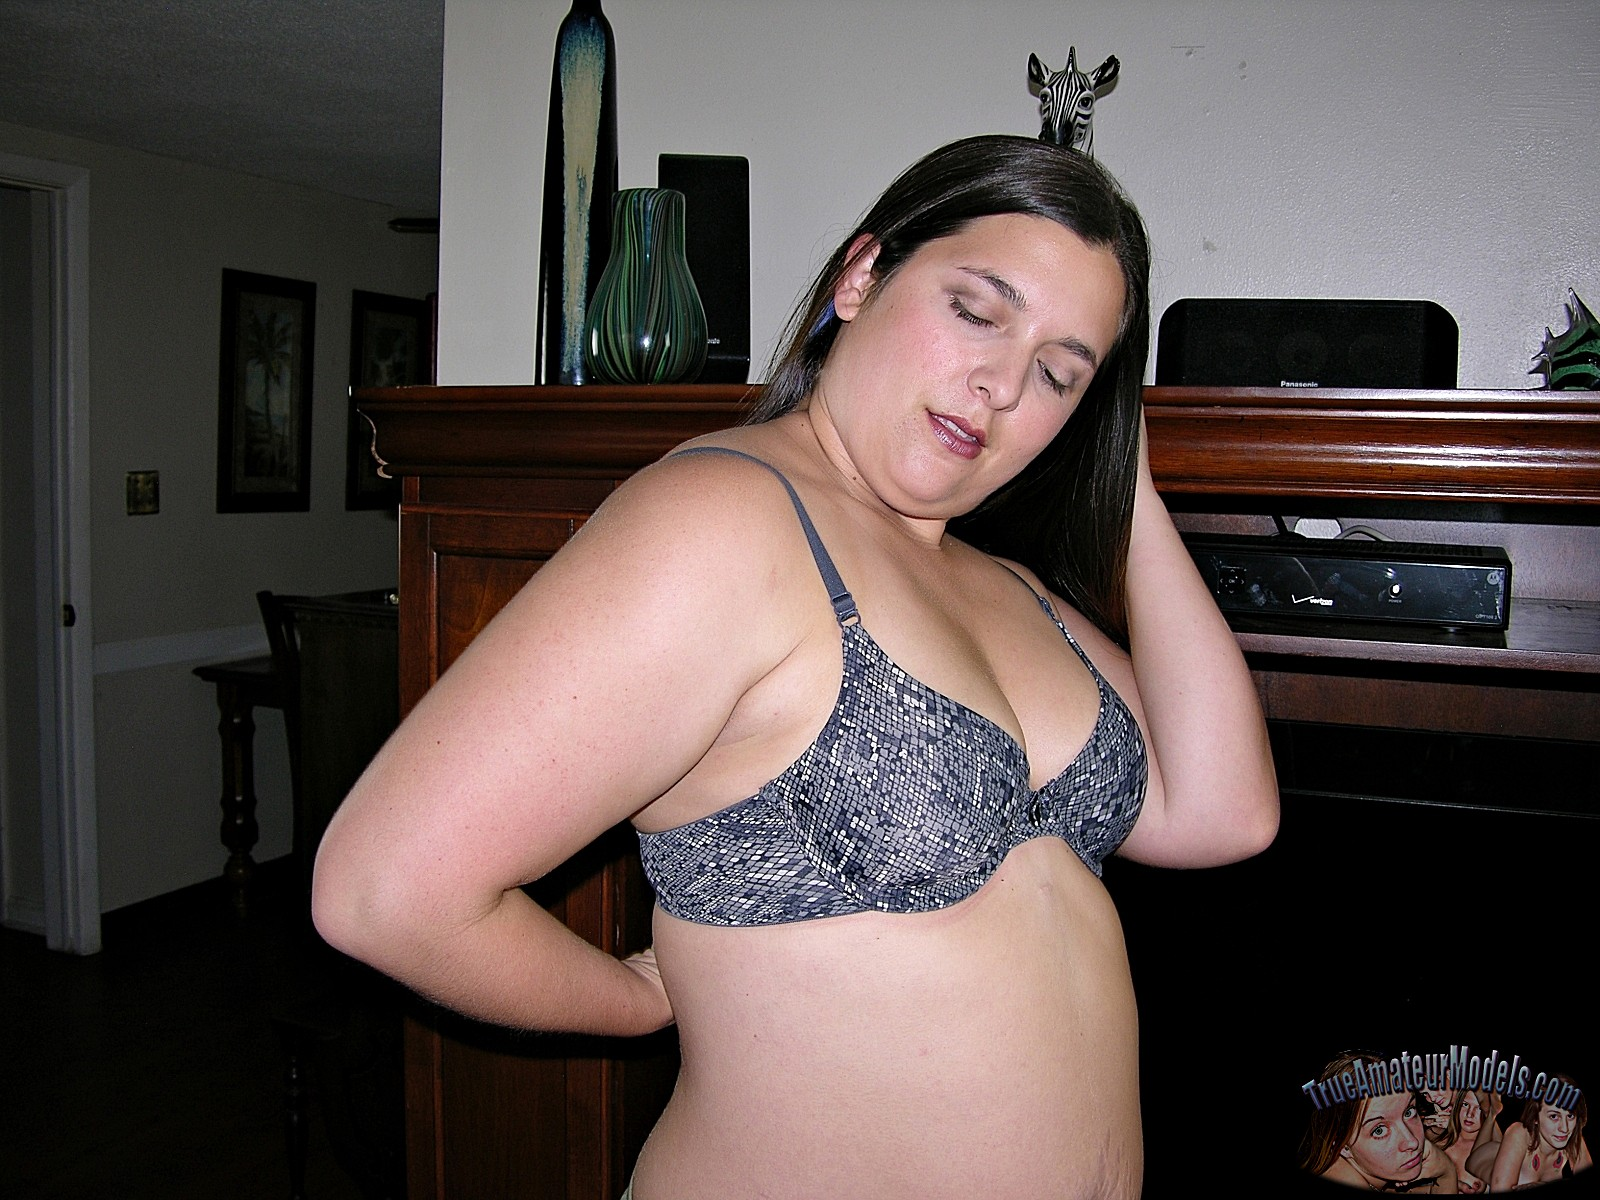 Hot Chubby Amateur Girlfriend